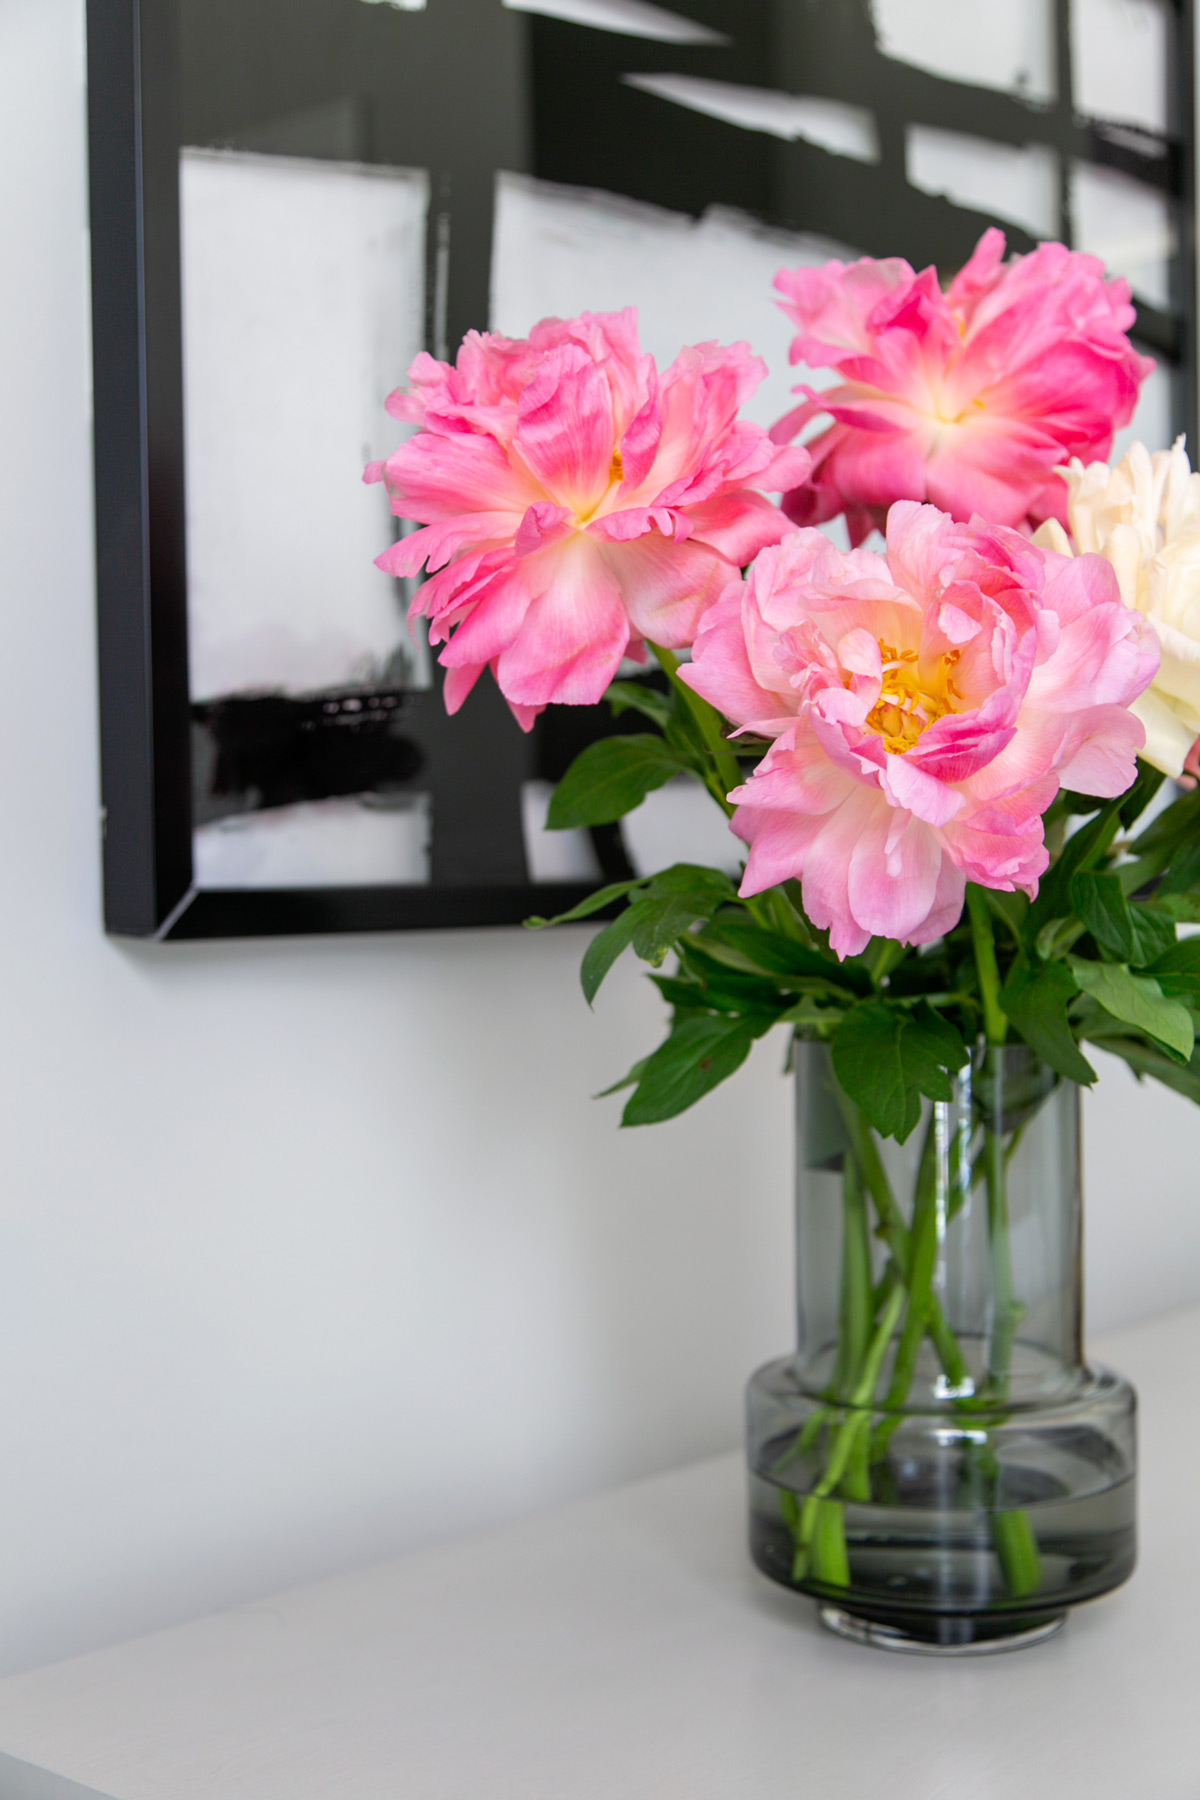 Glass vase of peonies on dresser in front of black and white abstract art